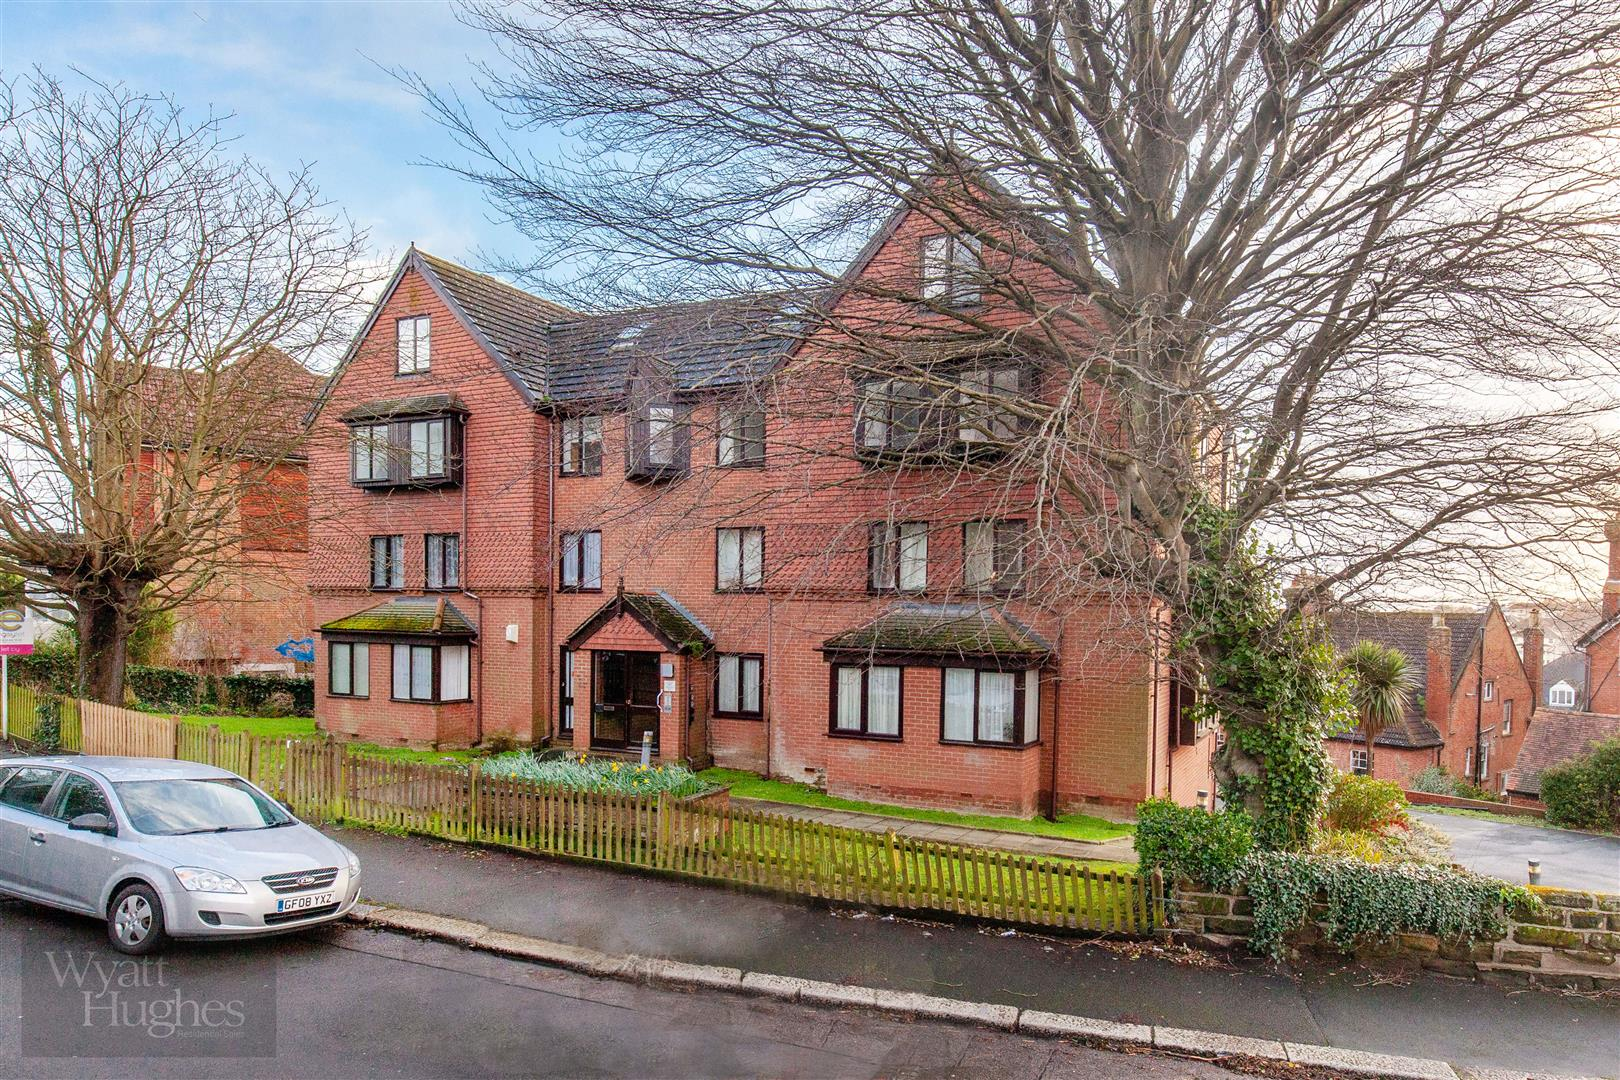 2 bed flat for sale in De Cham Road, St. Leonards-On-Sea - Property Image 1